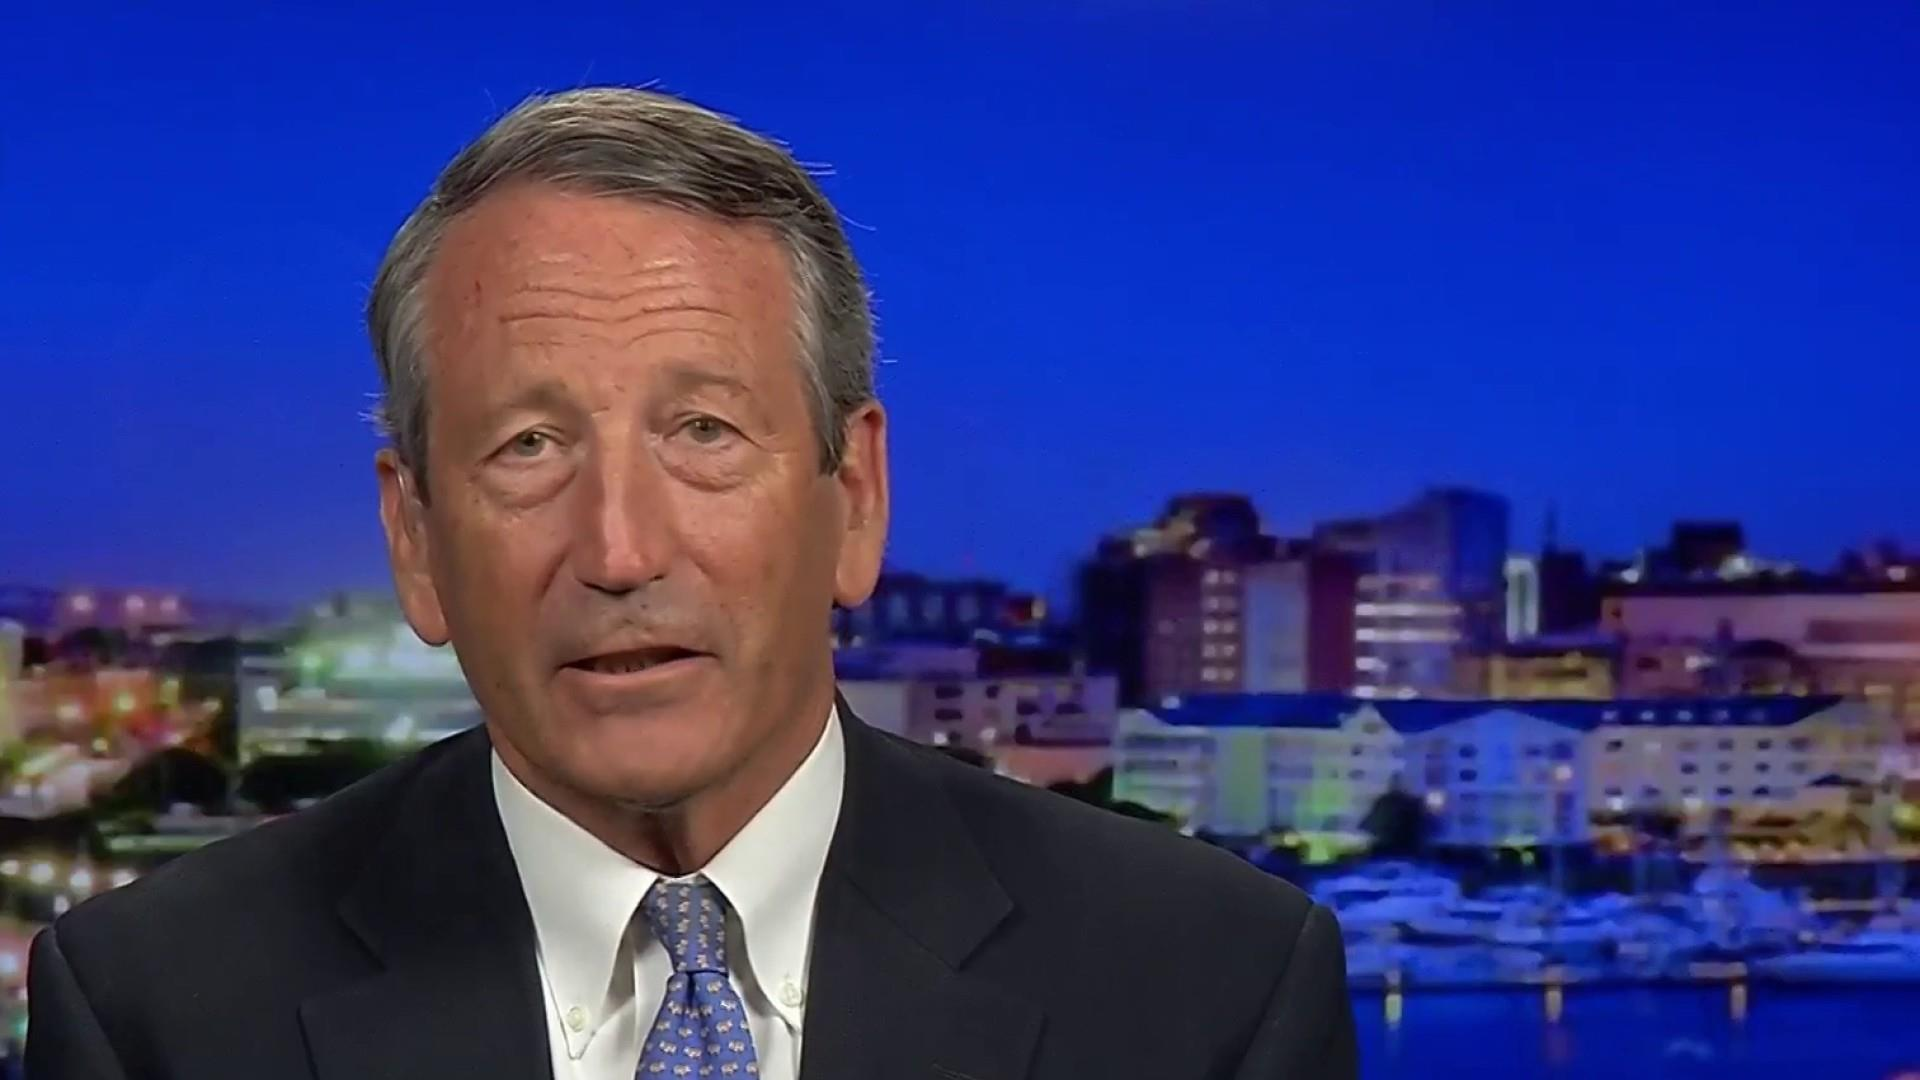 Possible Trump challenger Mark Sanford would vote for Trump over Biden